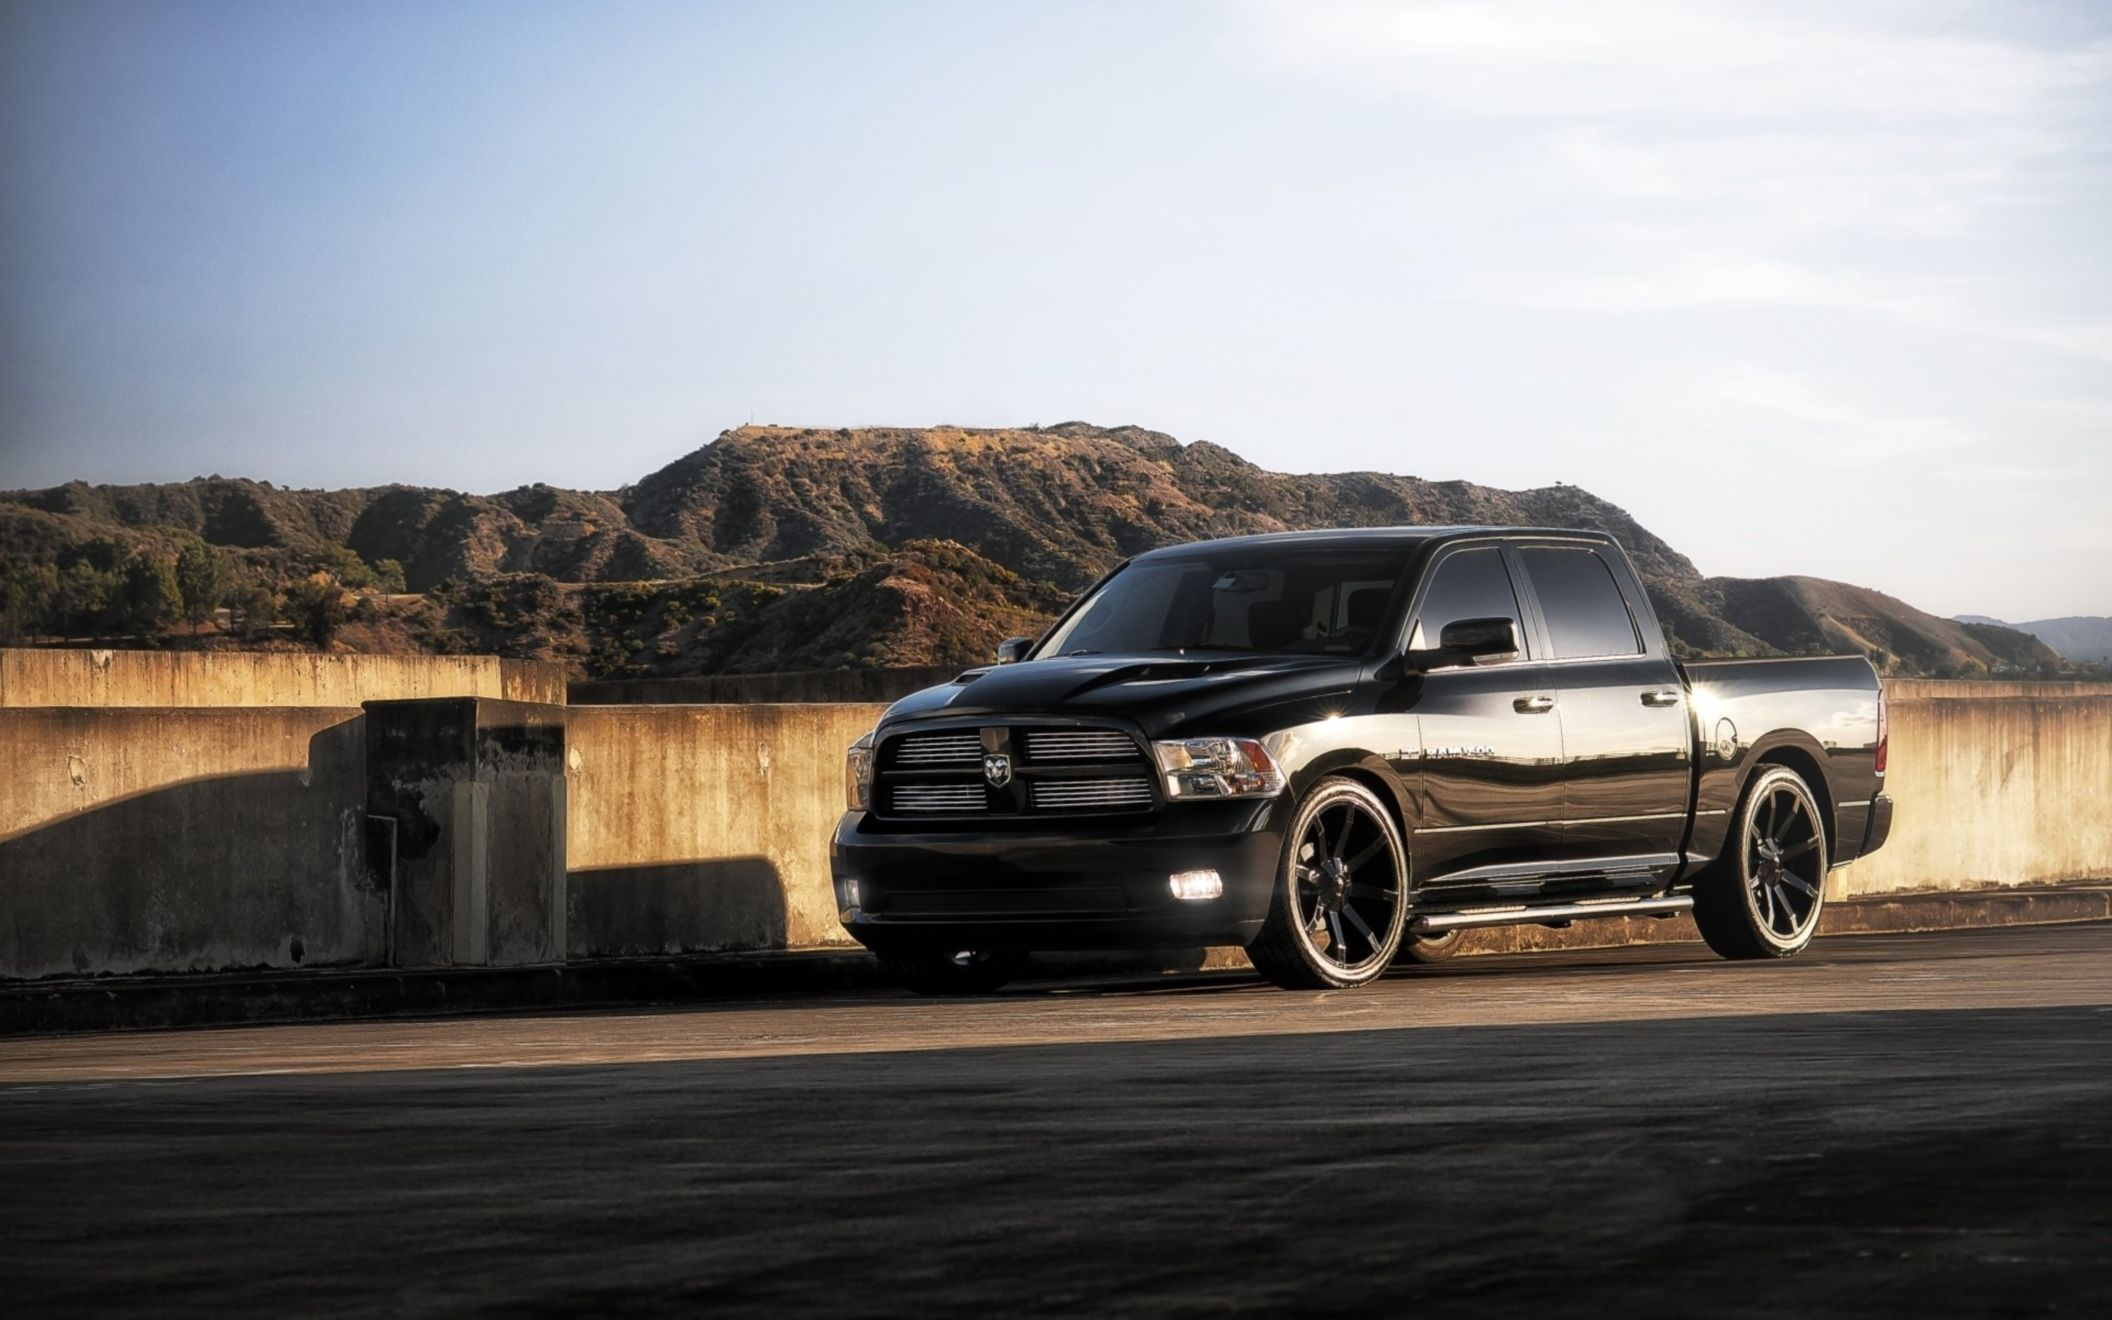 Download free HD Black Dodge Pickup Trucks 2014 Wallpaper, image